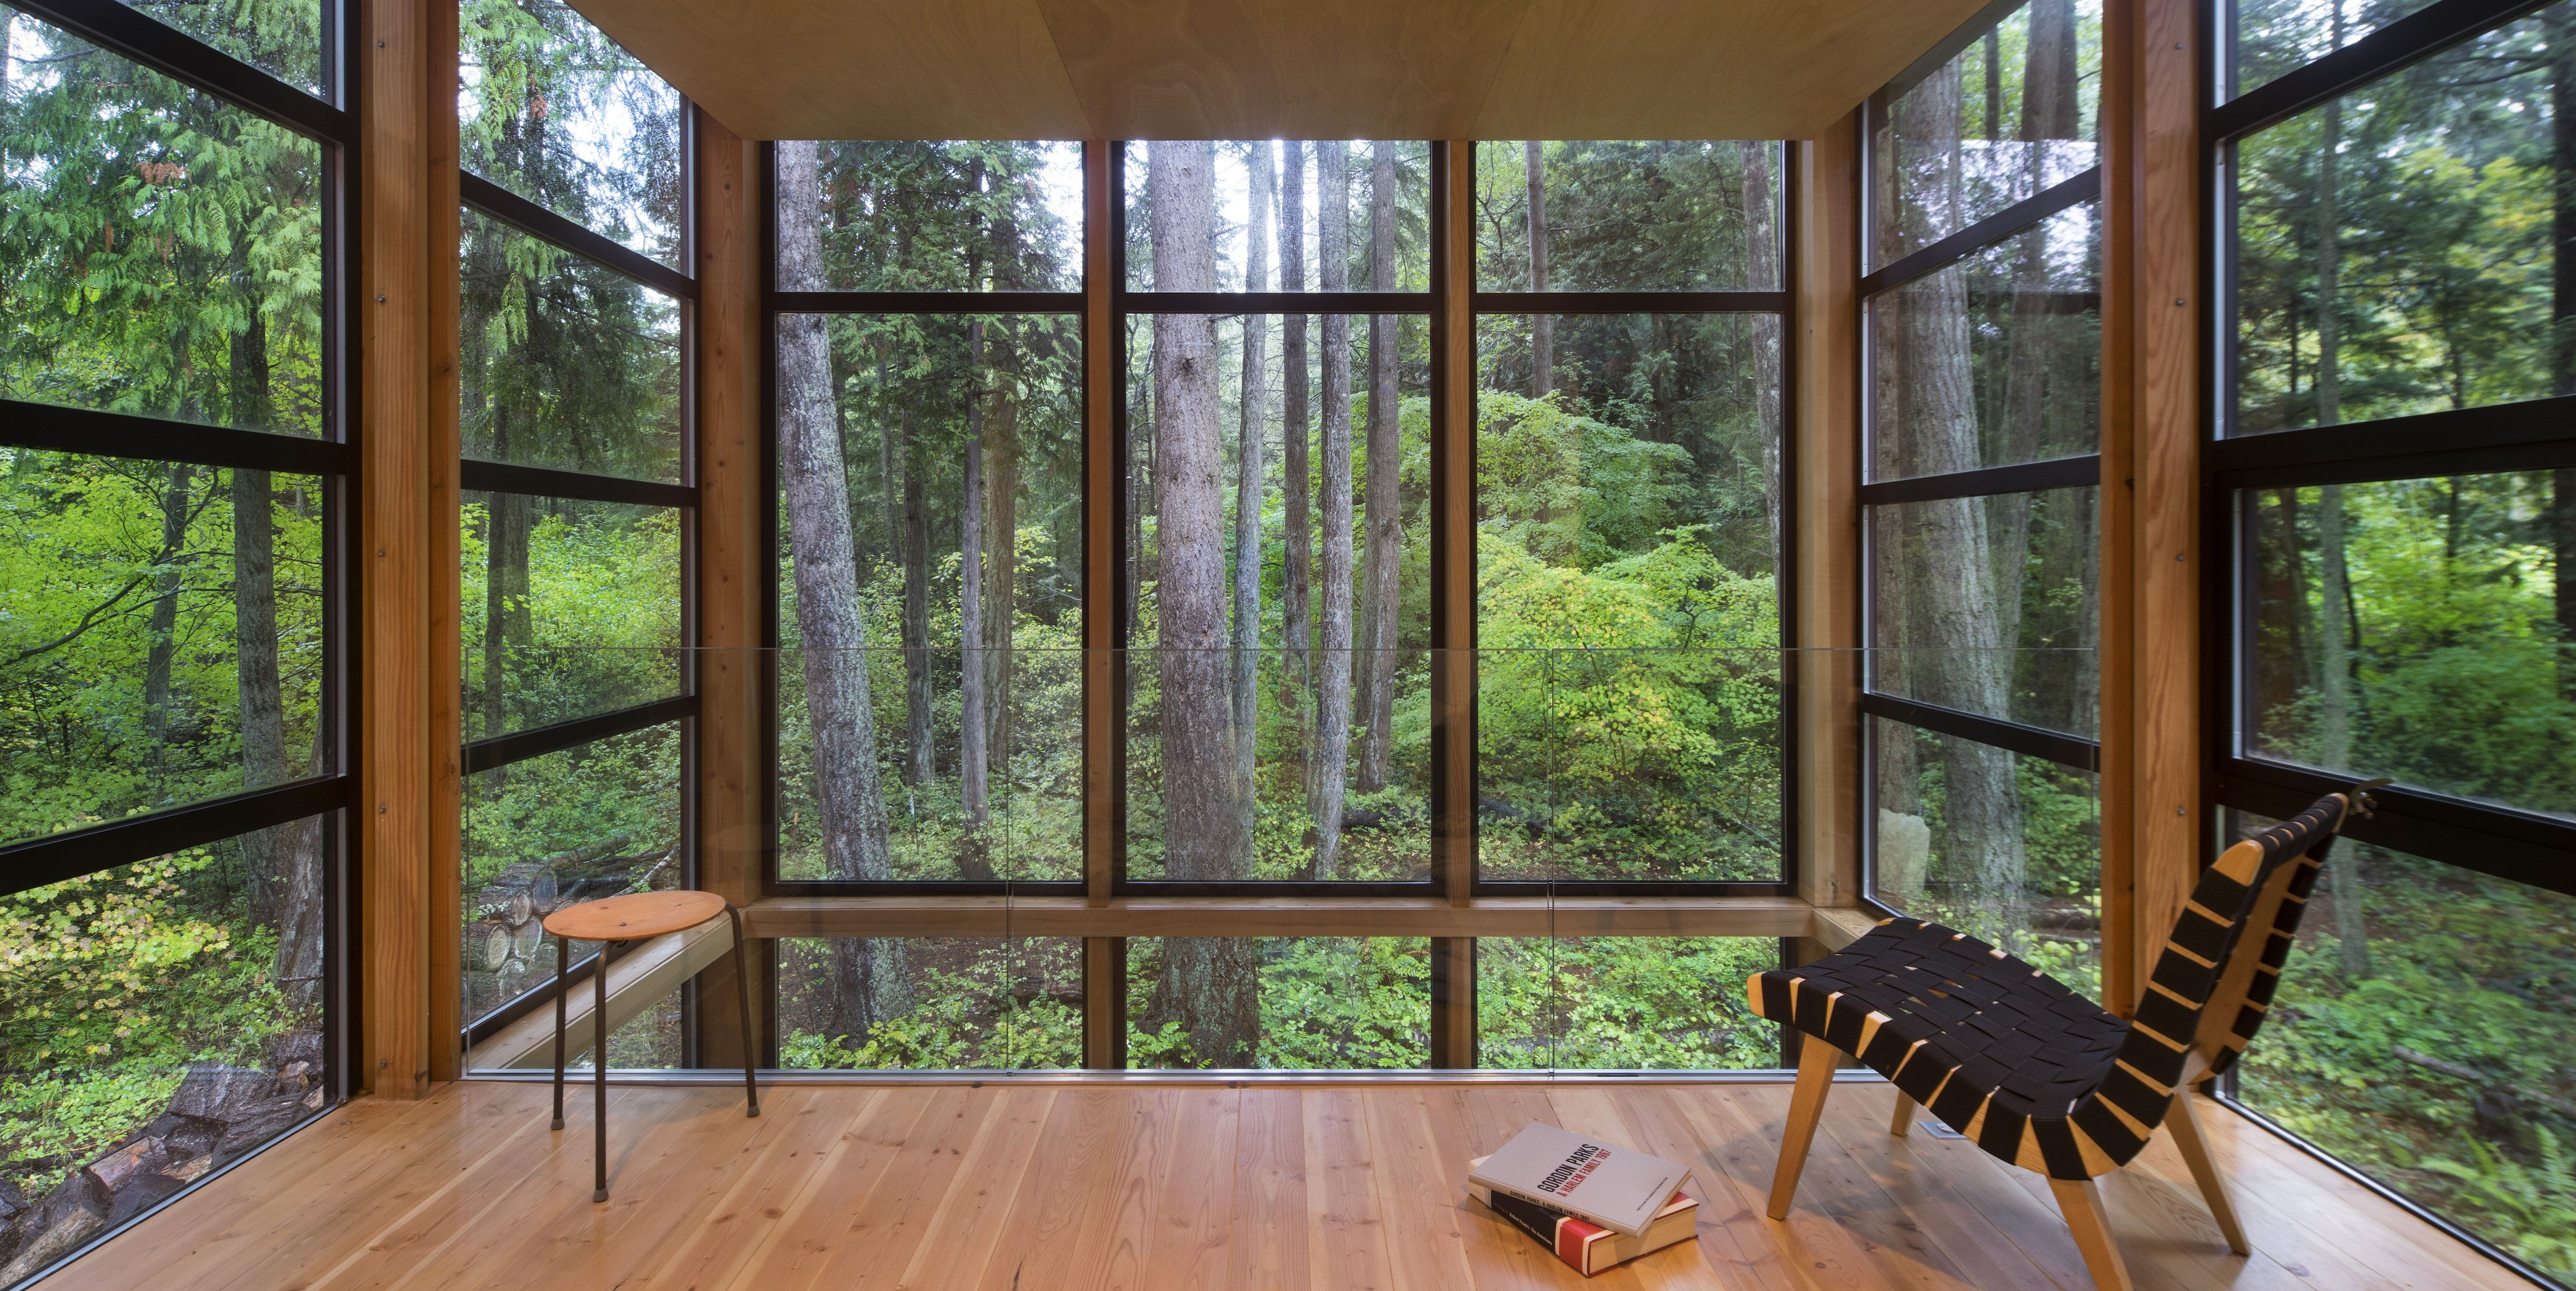 4 Best Tiny Home Designs - The American Institute Of Architects